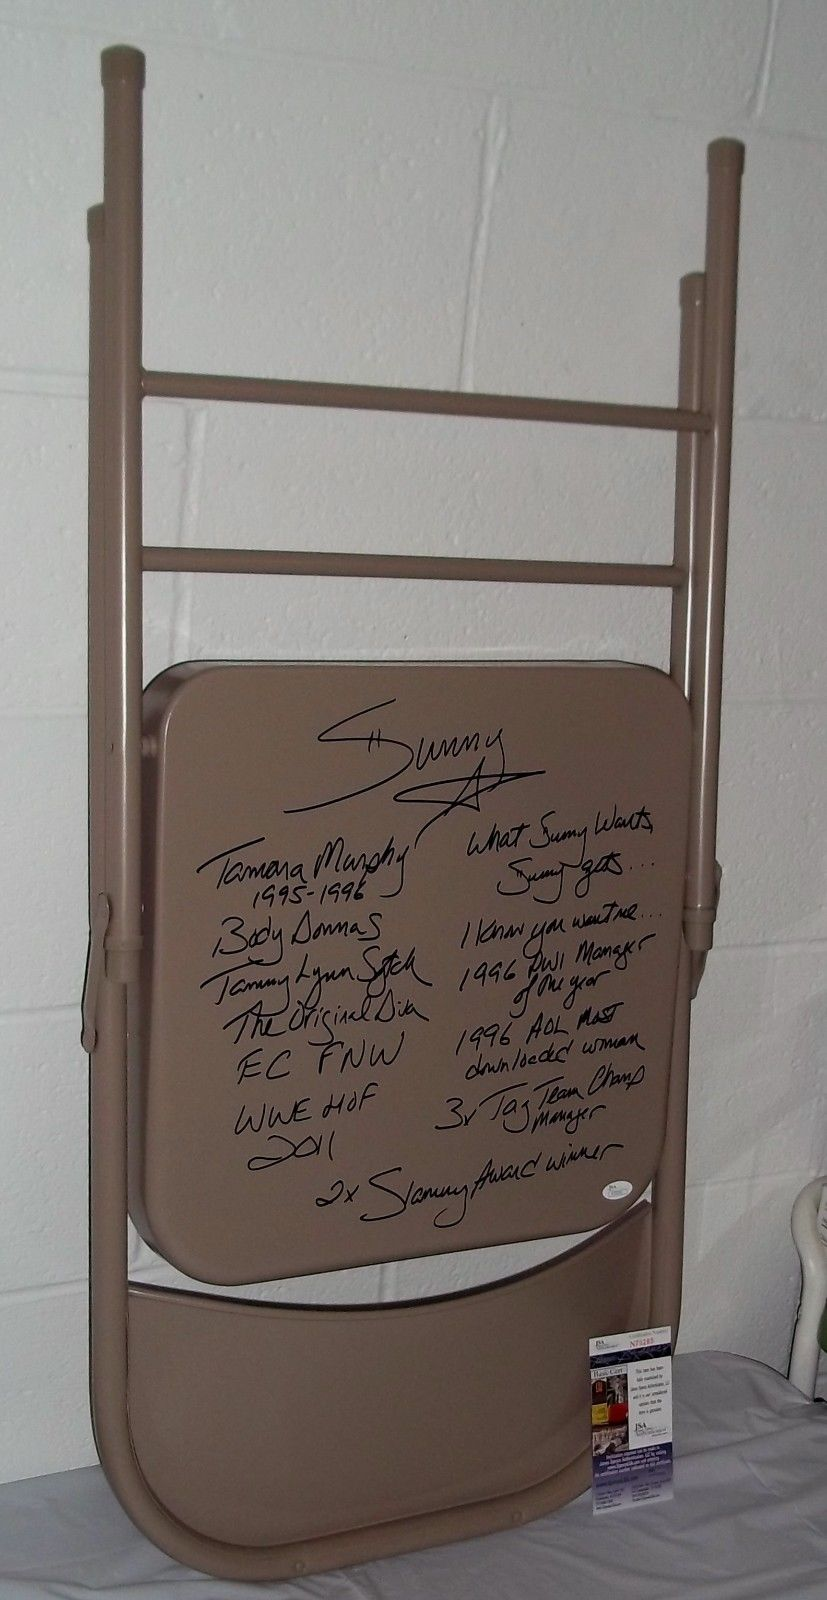 Sunny Tammy Sytch autographed chair 1